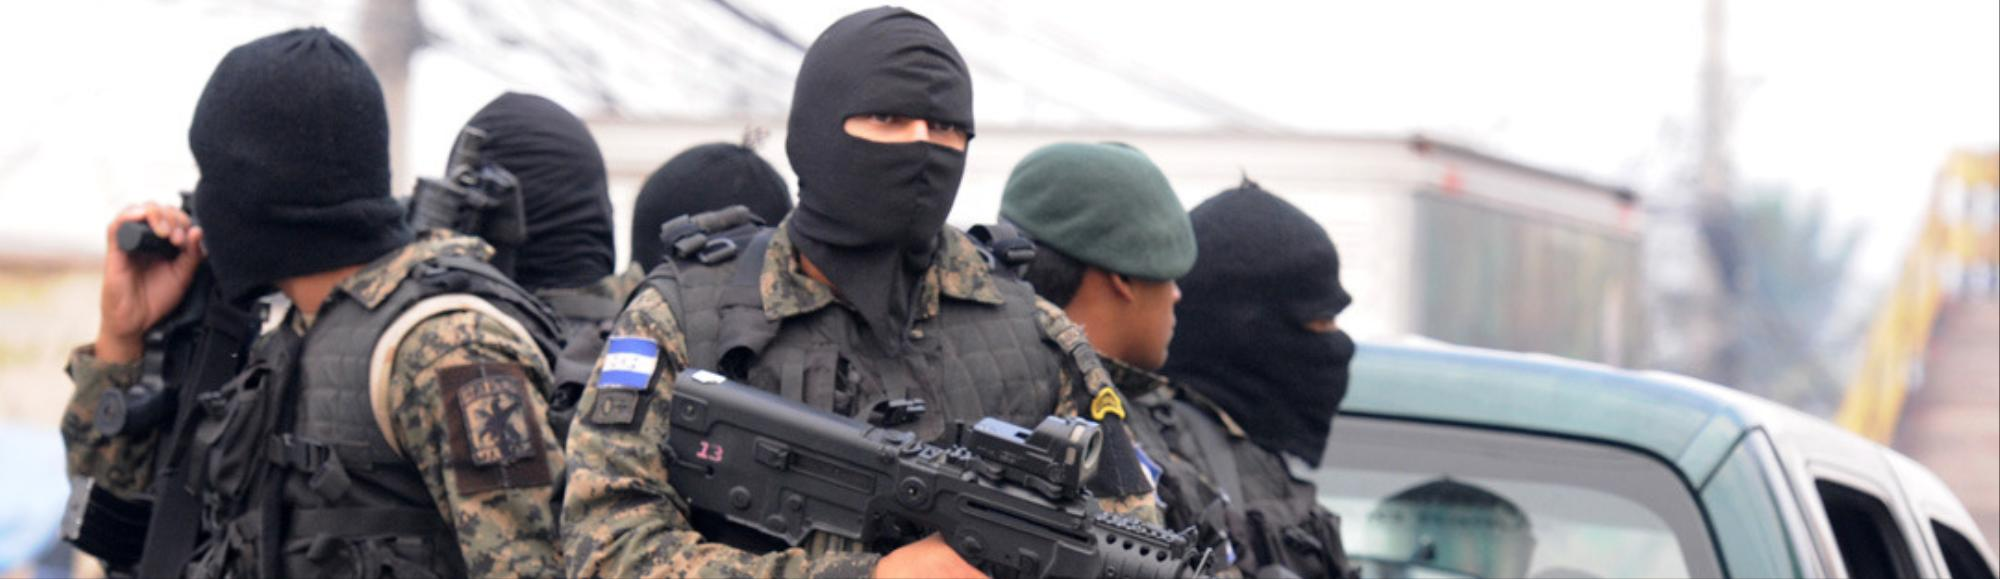 Honduras Is Combating Its Homicide Epidemic With Militarization